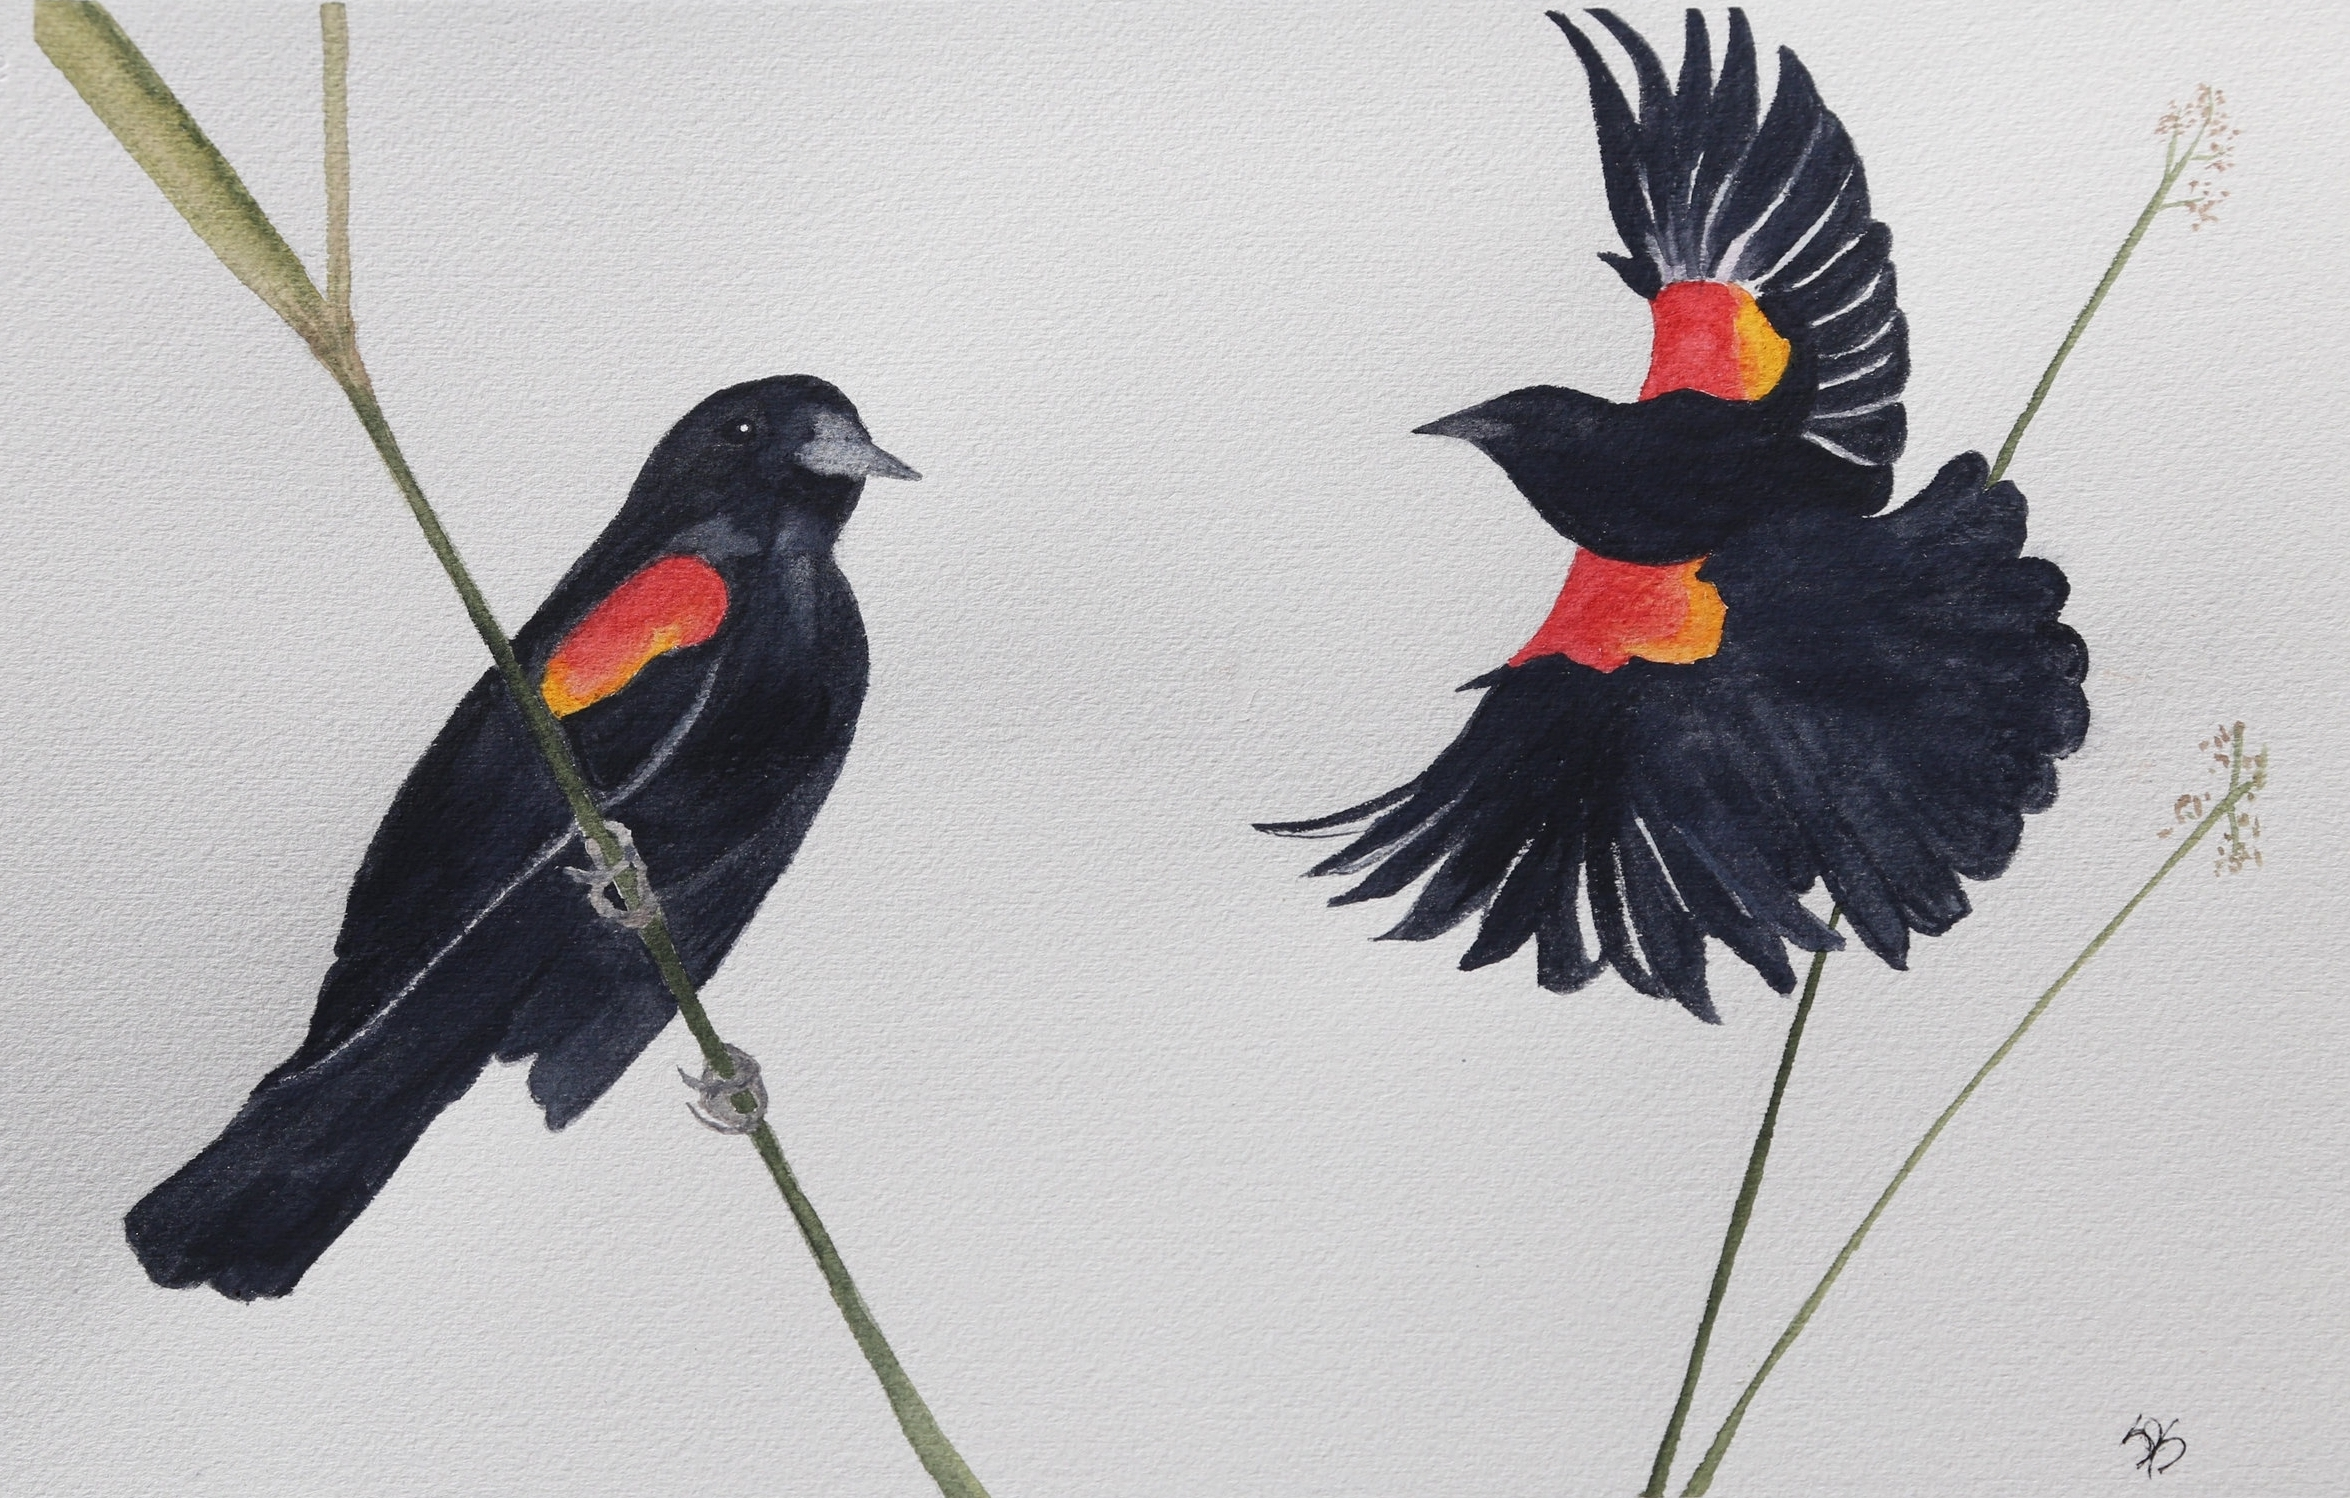 Snyder-Red-winged Blackbird.jpg